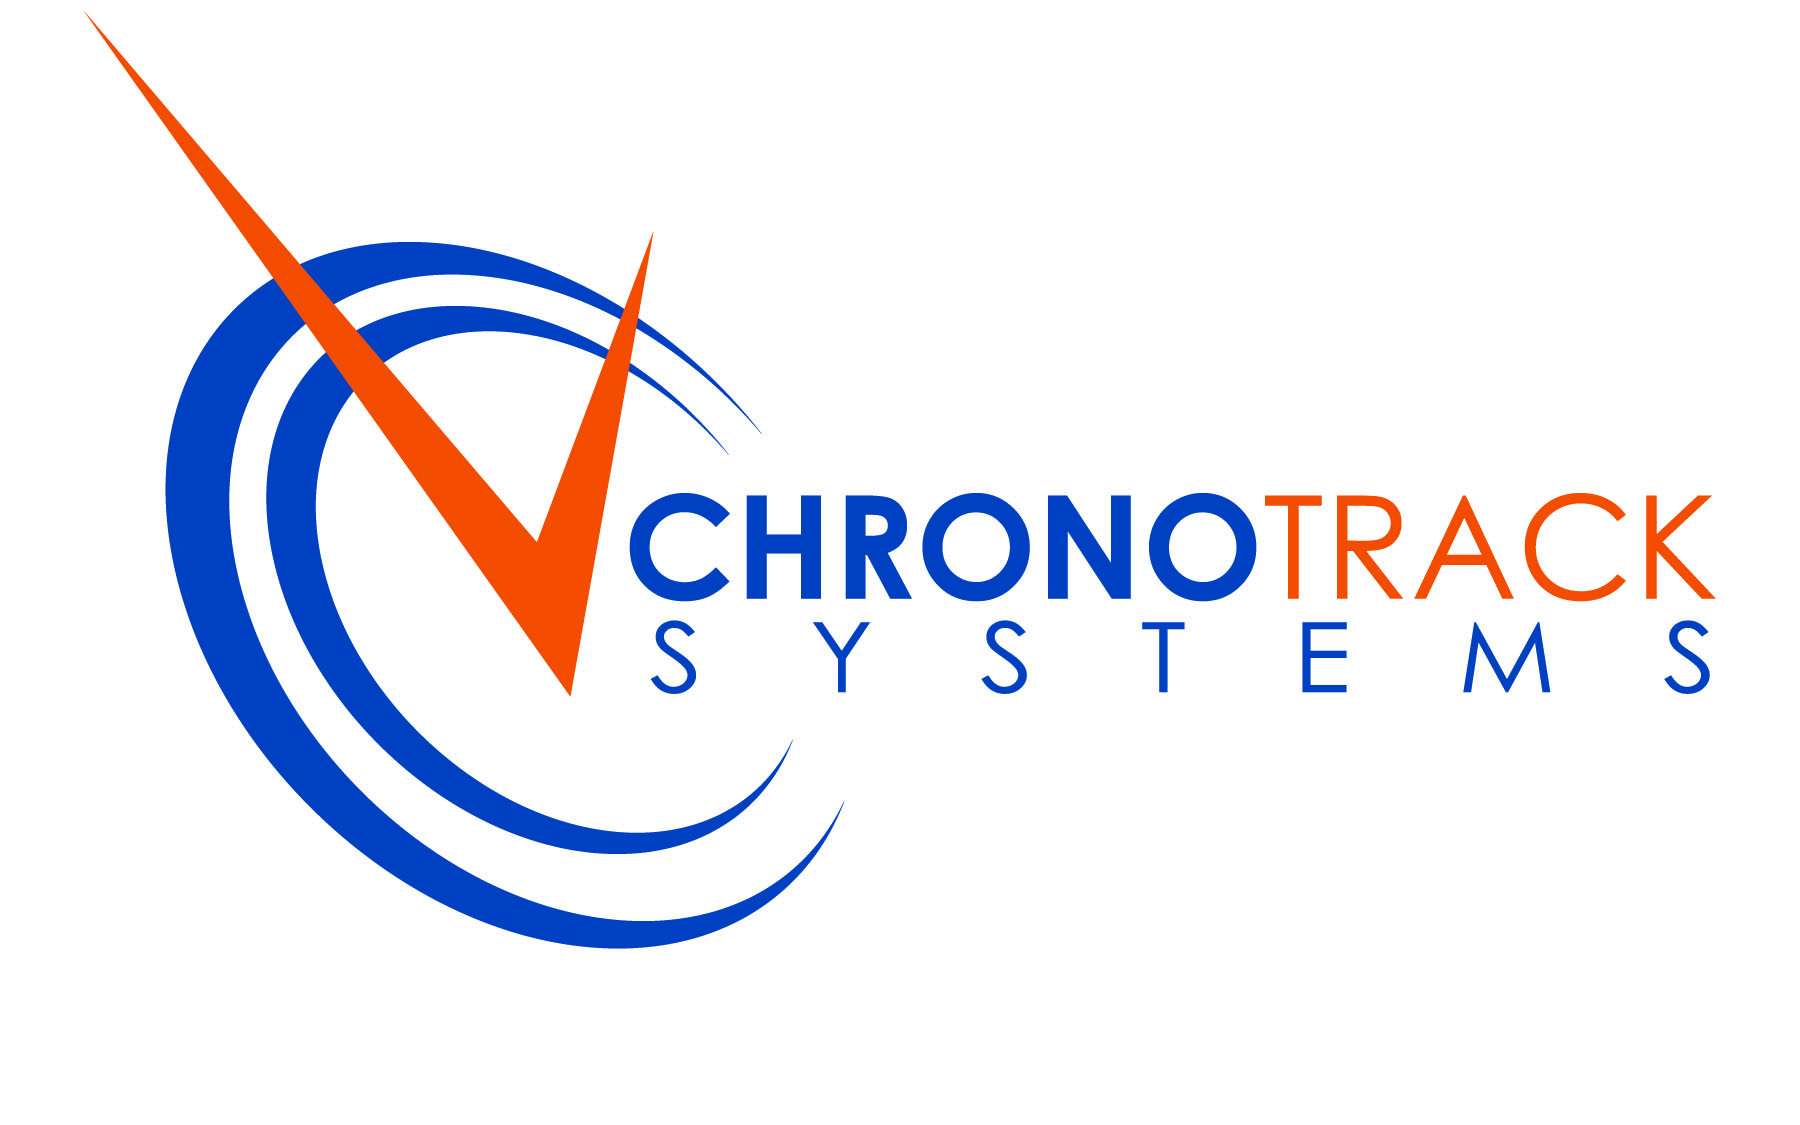 chronotrack logo